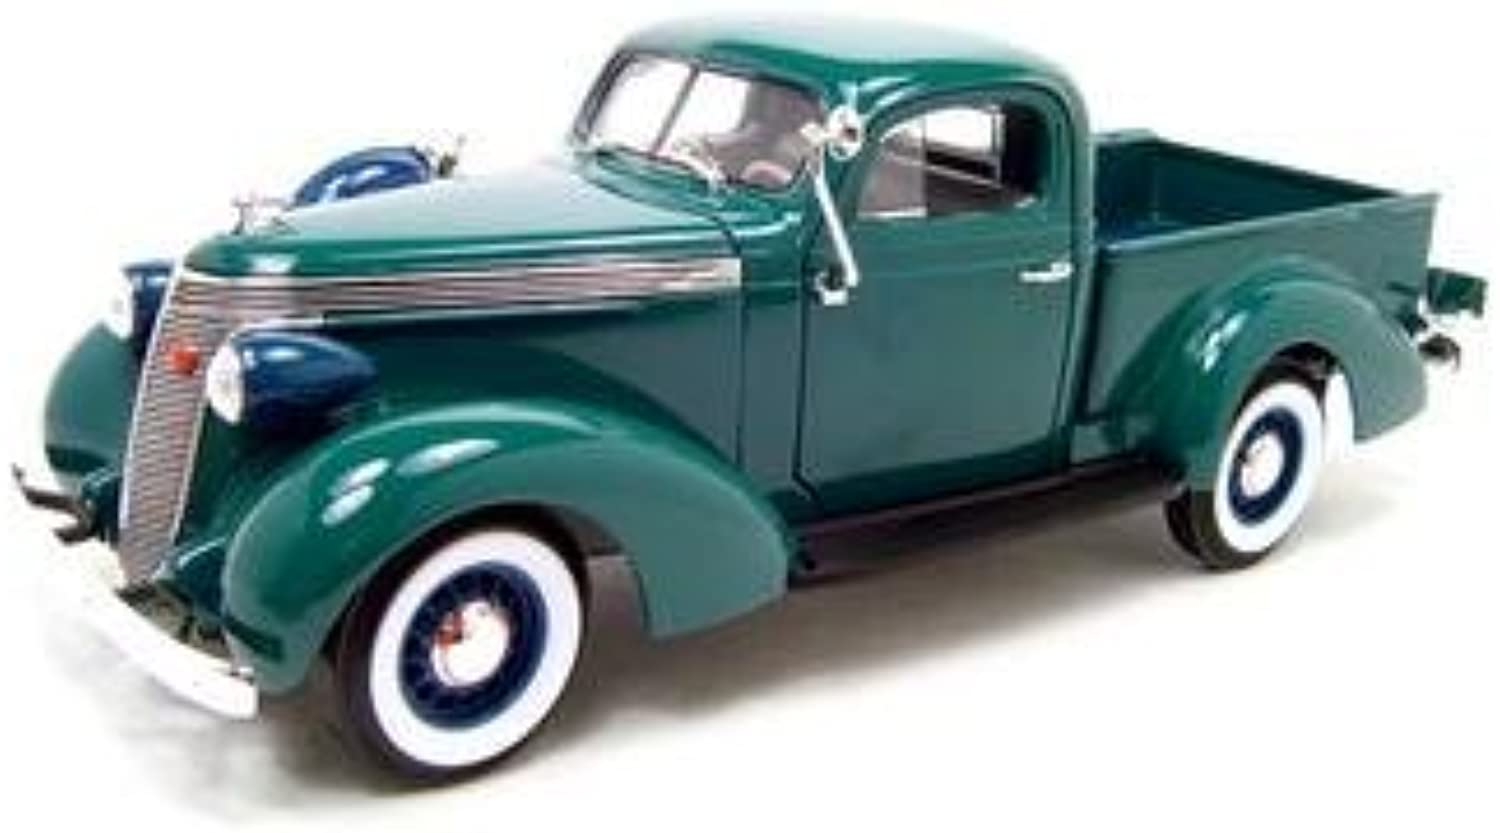 1937 STUDEBAKER PICK PICK PICK UP EXPRESS 1 18 DIECAST MODEL by Road Signature b106cd